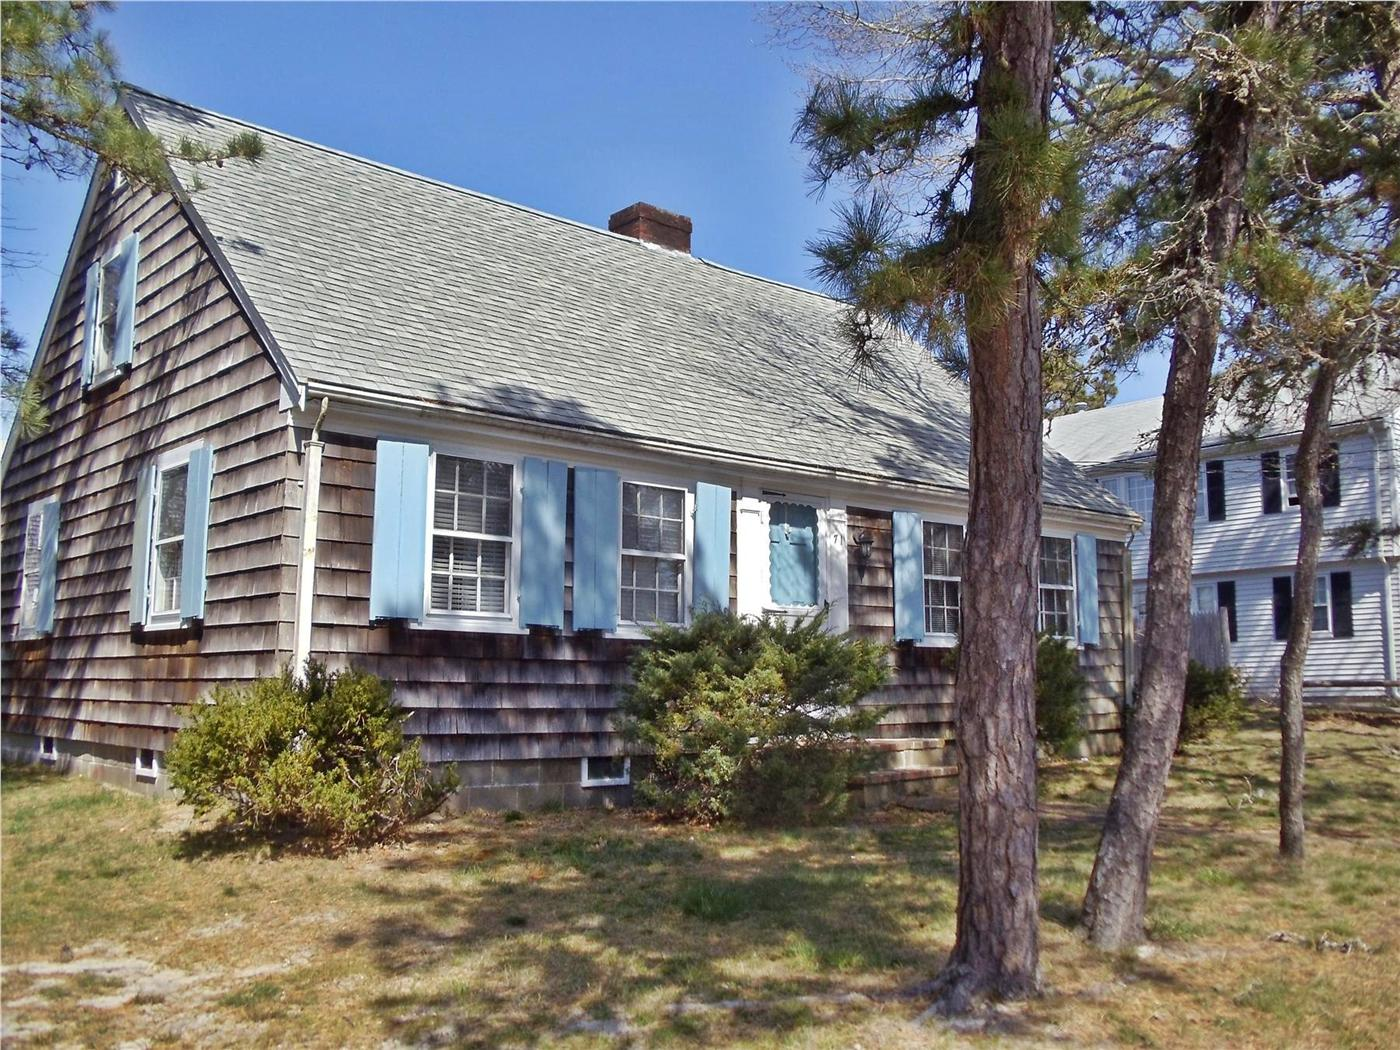 Dennis Vacation Rental Home In Cape Cod Ma 02639